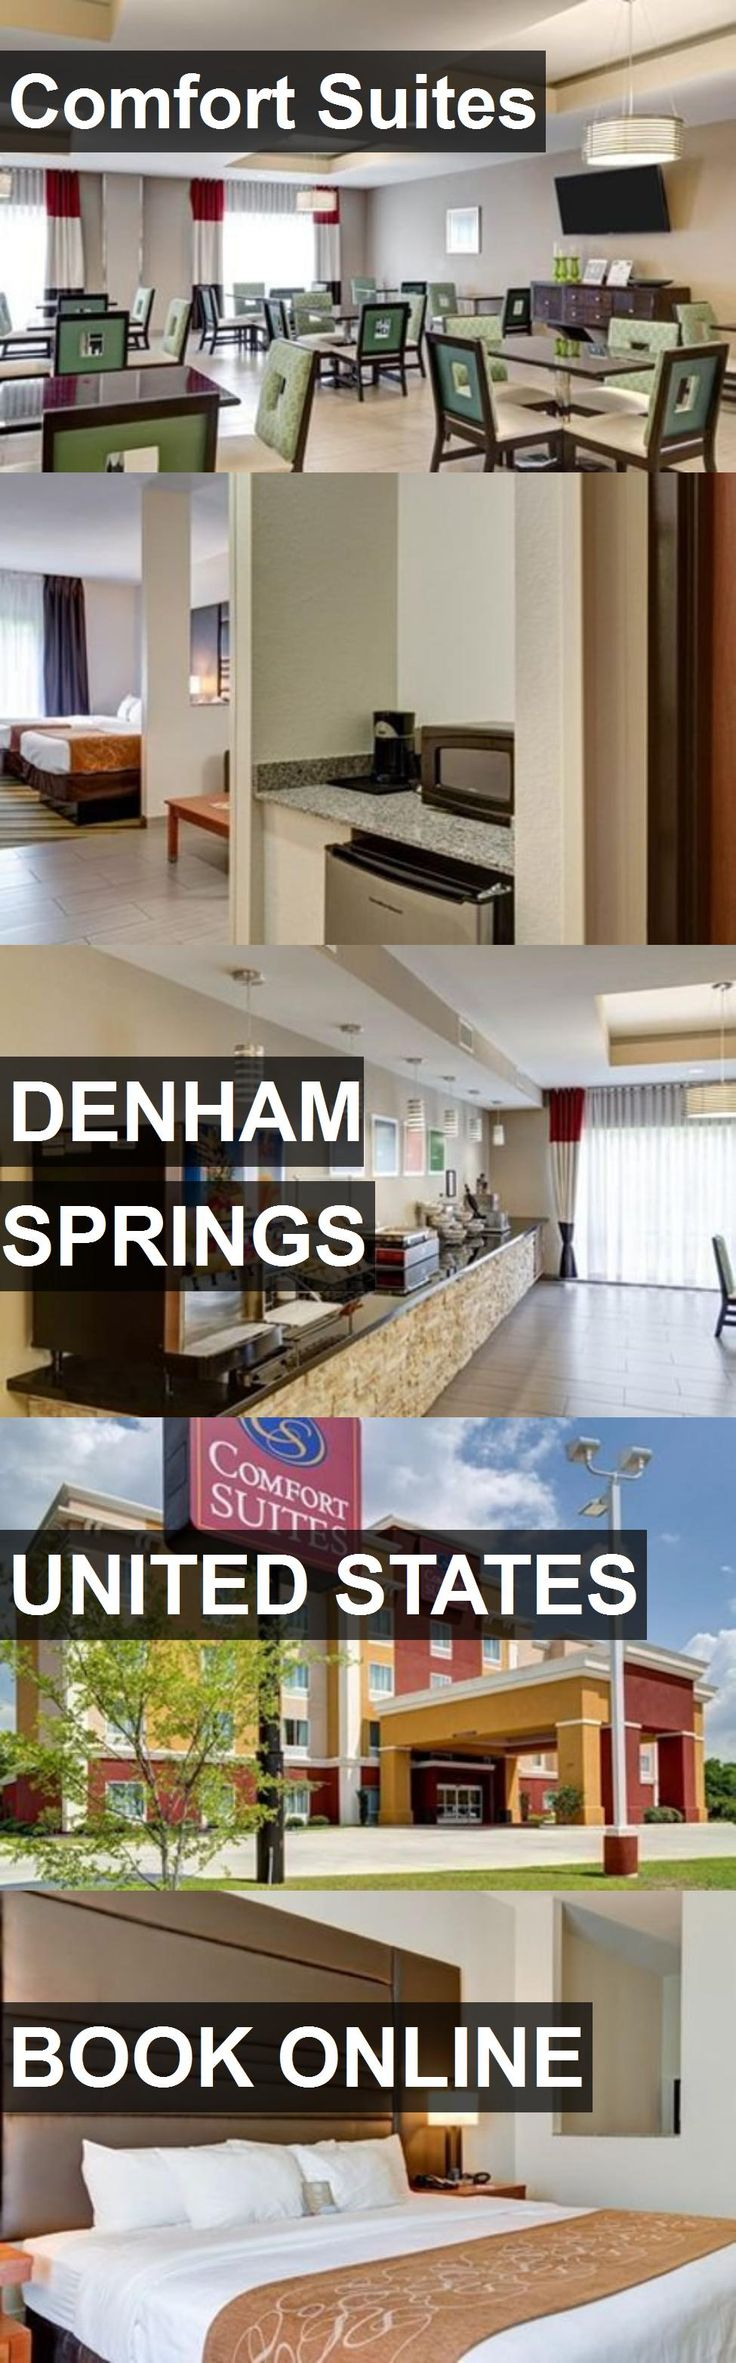 Hotel Comfort Suites in Denham Springs, United States. For more information, photos, reviews and best prices please follow the link. #UnitedStates #DenhamSprings #travel #vacation #hotel